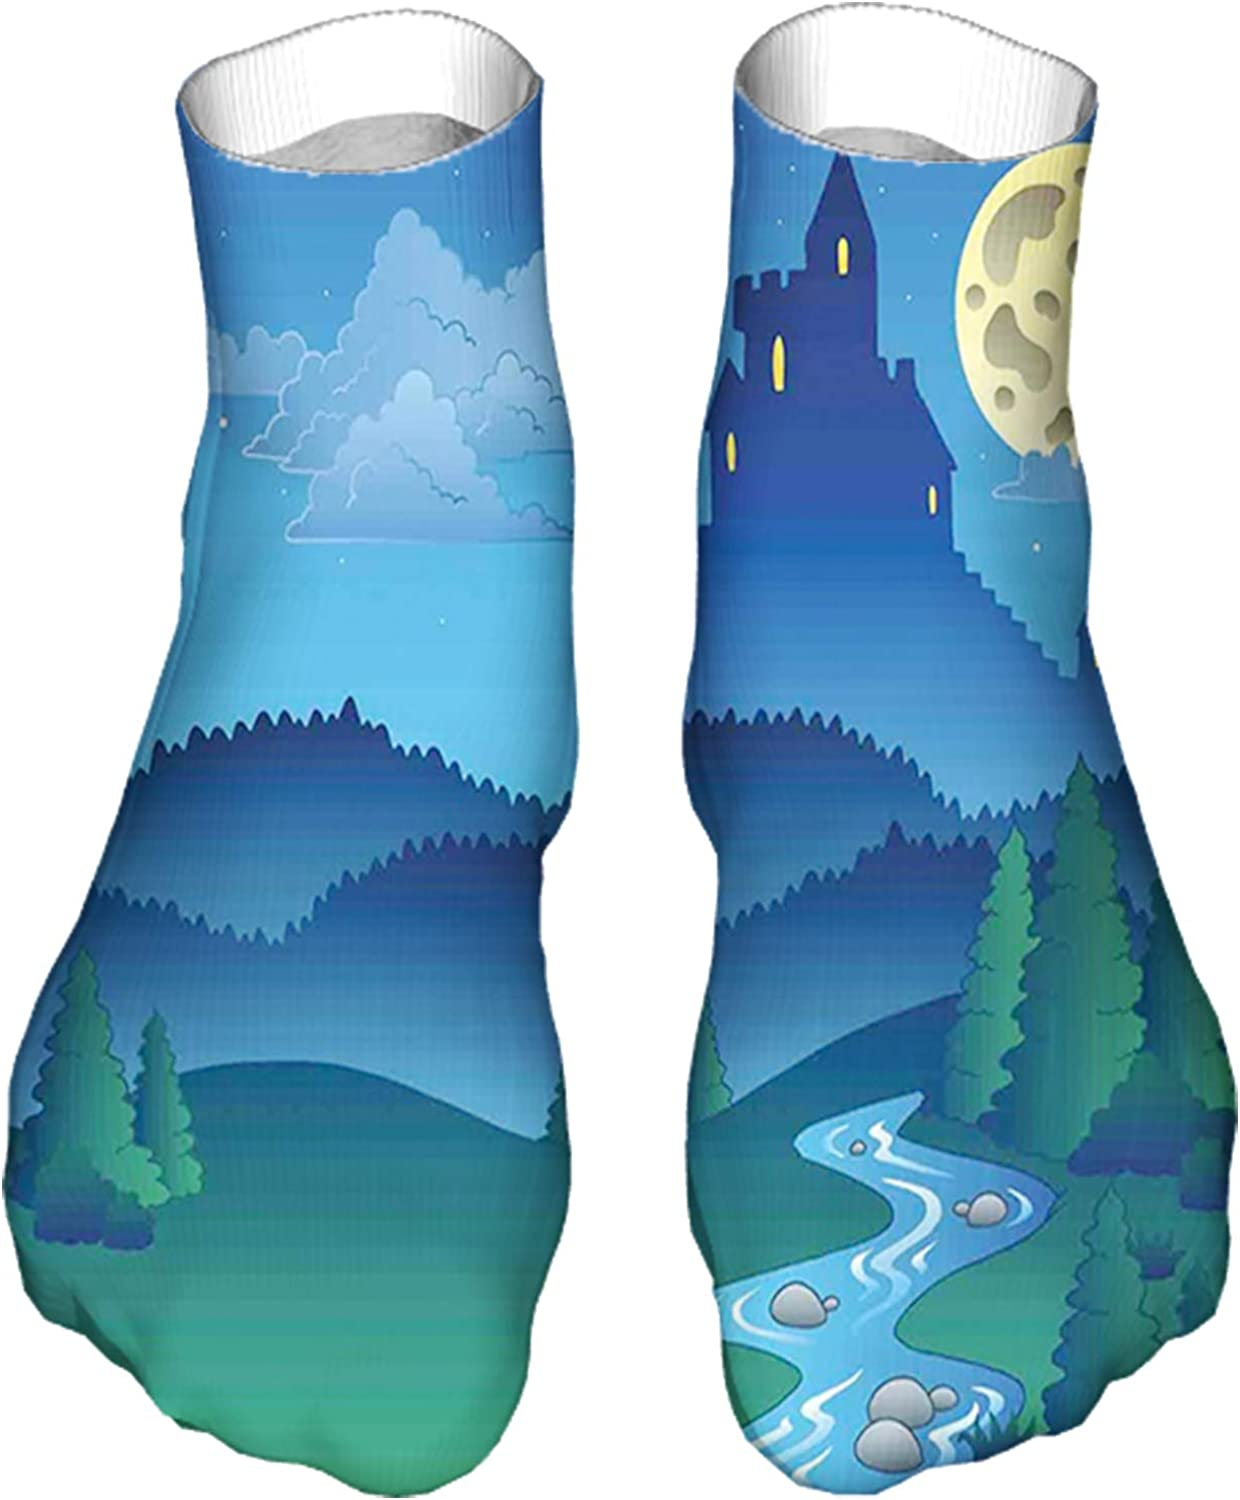 Men's and Women's Fun Socks Printed Cool Novelty Funny Socks,Lonely Castle on The Hill Beyond The Mountains and Full